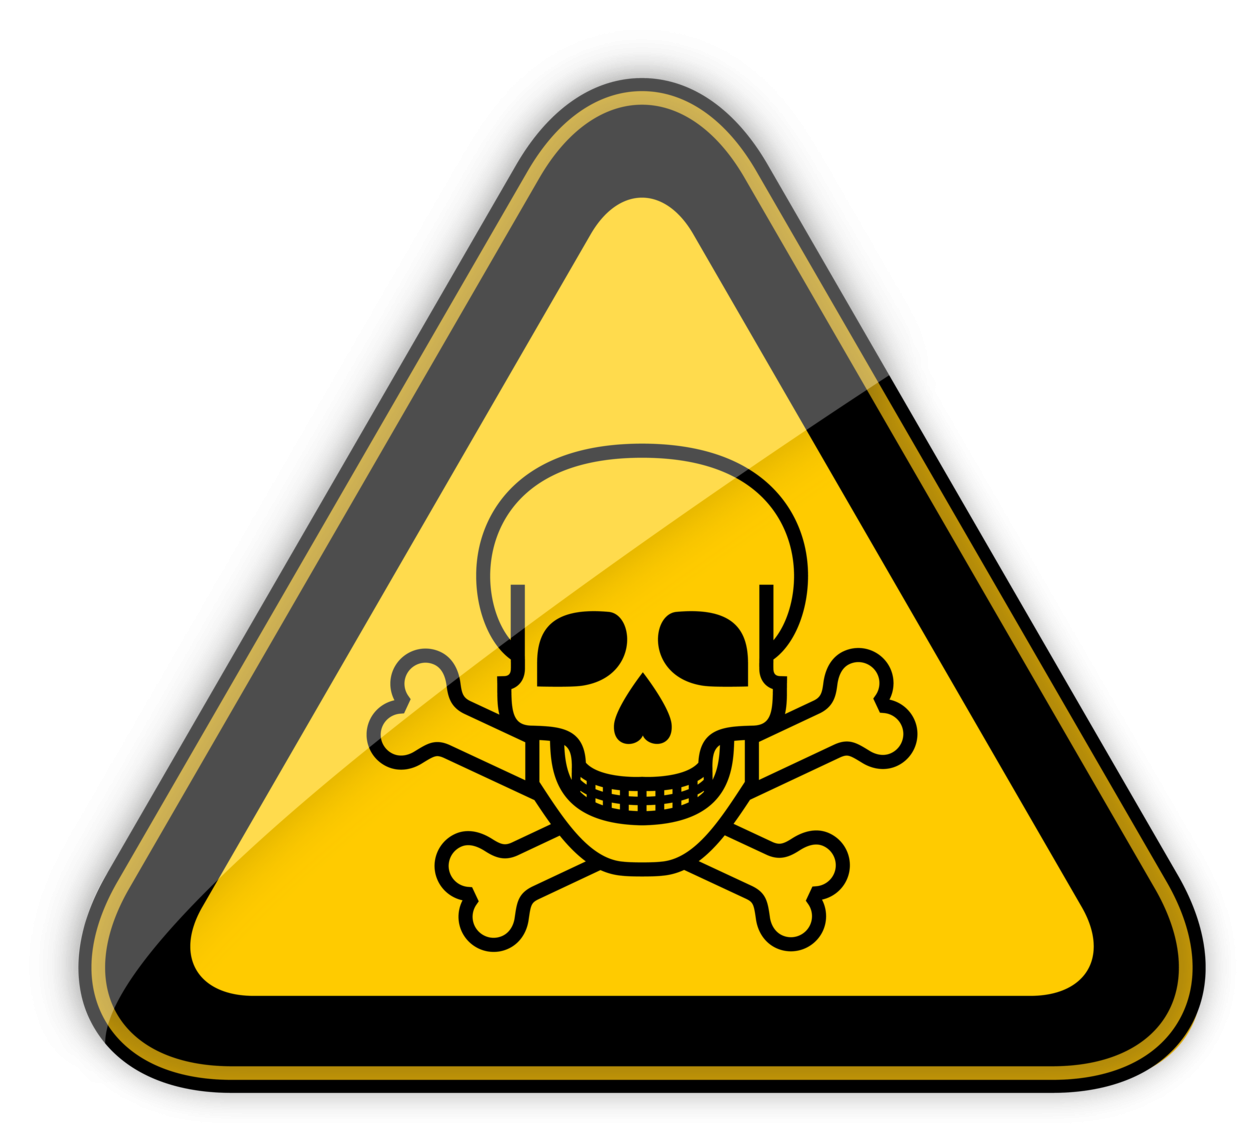 Toxic Warning Sign PNG Clipart